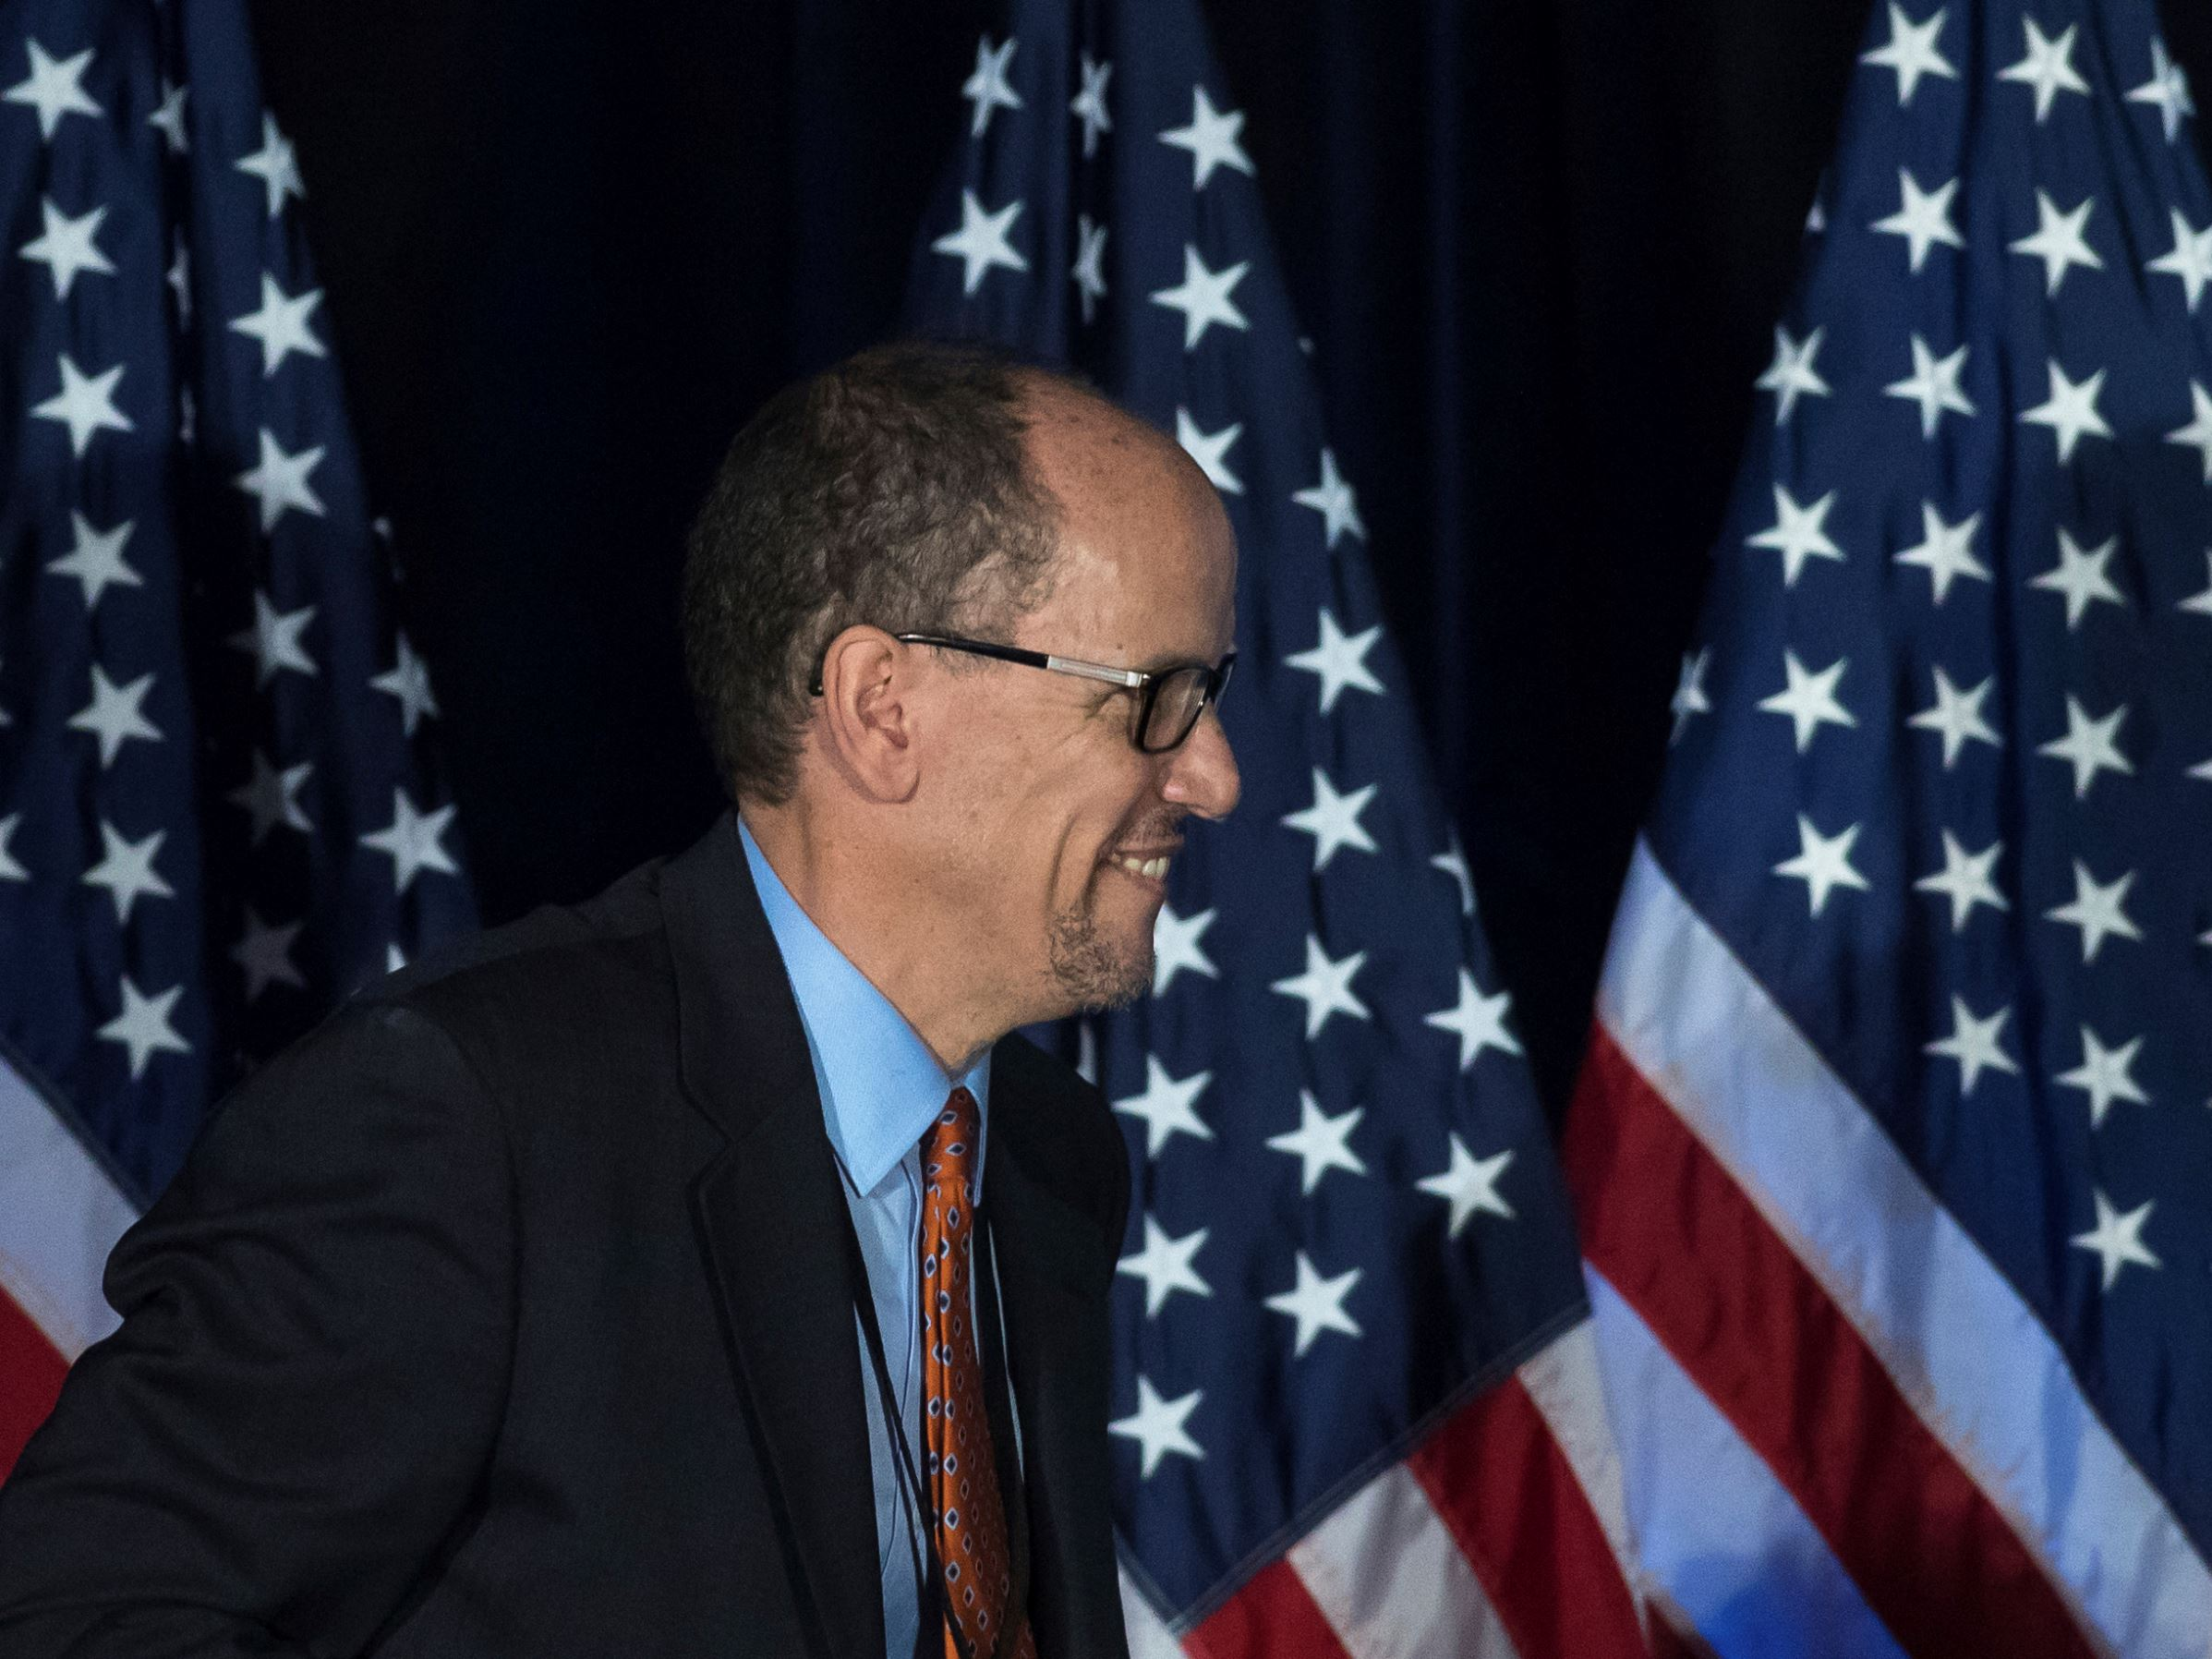 Former Labor Secretary Tom Perezbefore speaking during the general session of the DNC winter meeting in Atlanta, Saturday, Feb. 25, 2017.